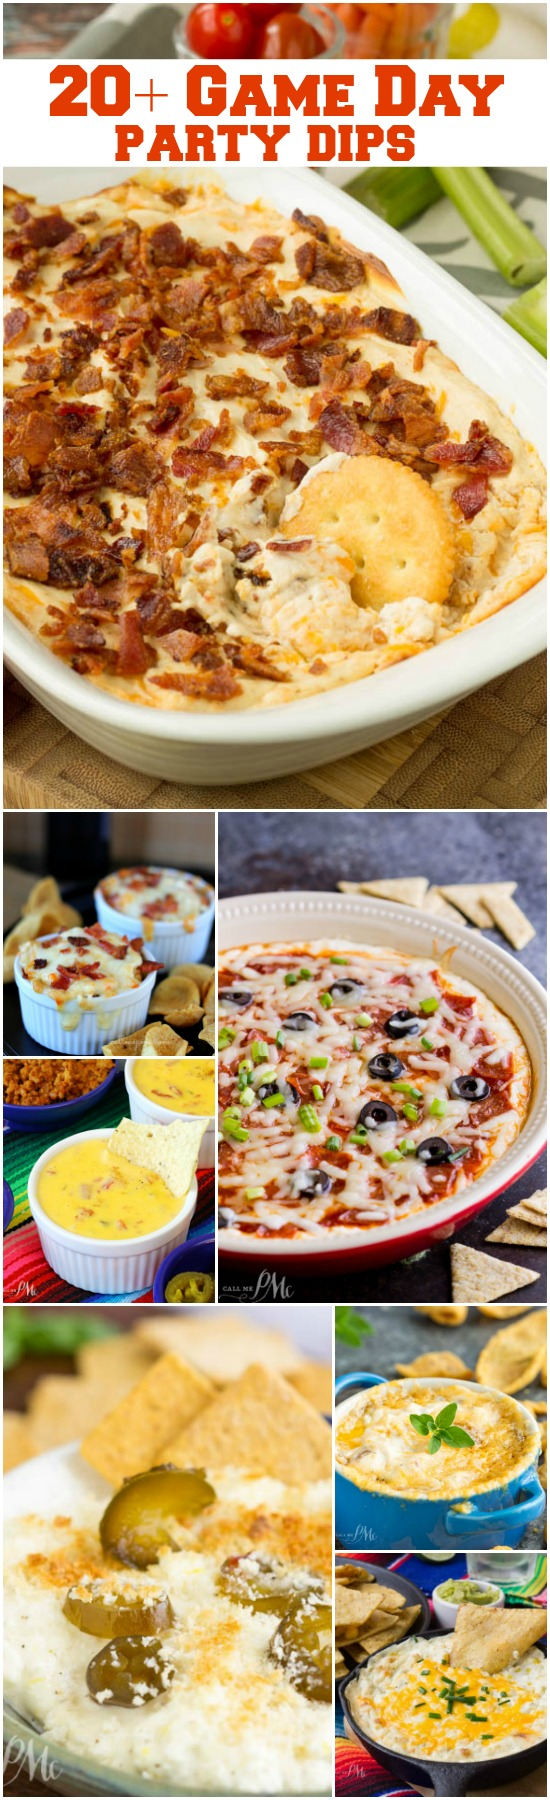 Easy Game Day Party Dip Recipes just in time for your football watch parties! Let your taste buds take a walk on the creamy, cheesy side with the party-worthy, fun, festive, and flavorful dip recipes. A creamy dip will never let you down!